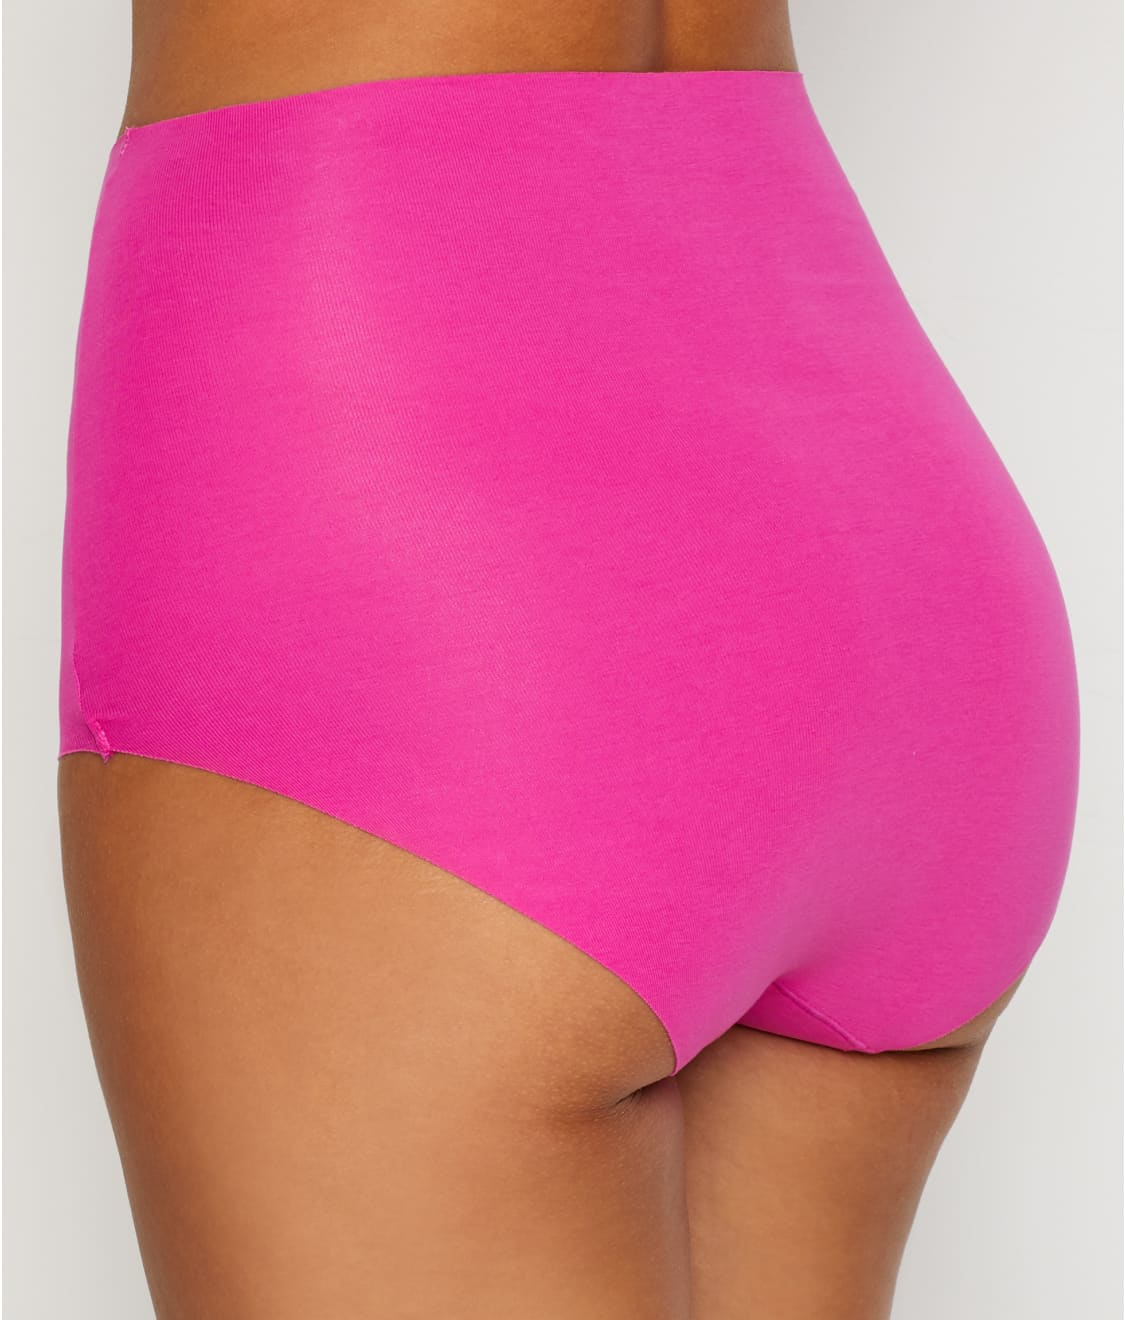 a6f83b59b9f7 Wacoal Beyond Naked Full Brief | Bare Necessities (870359)